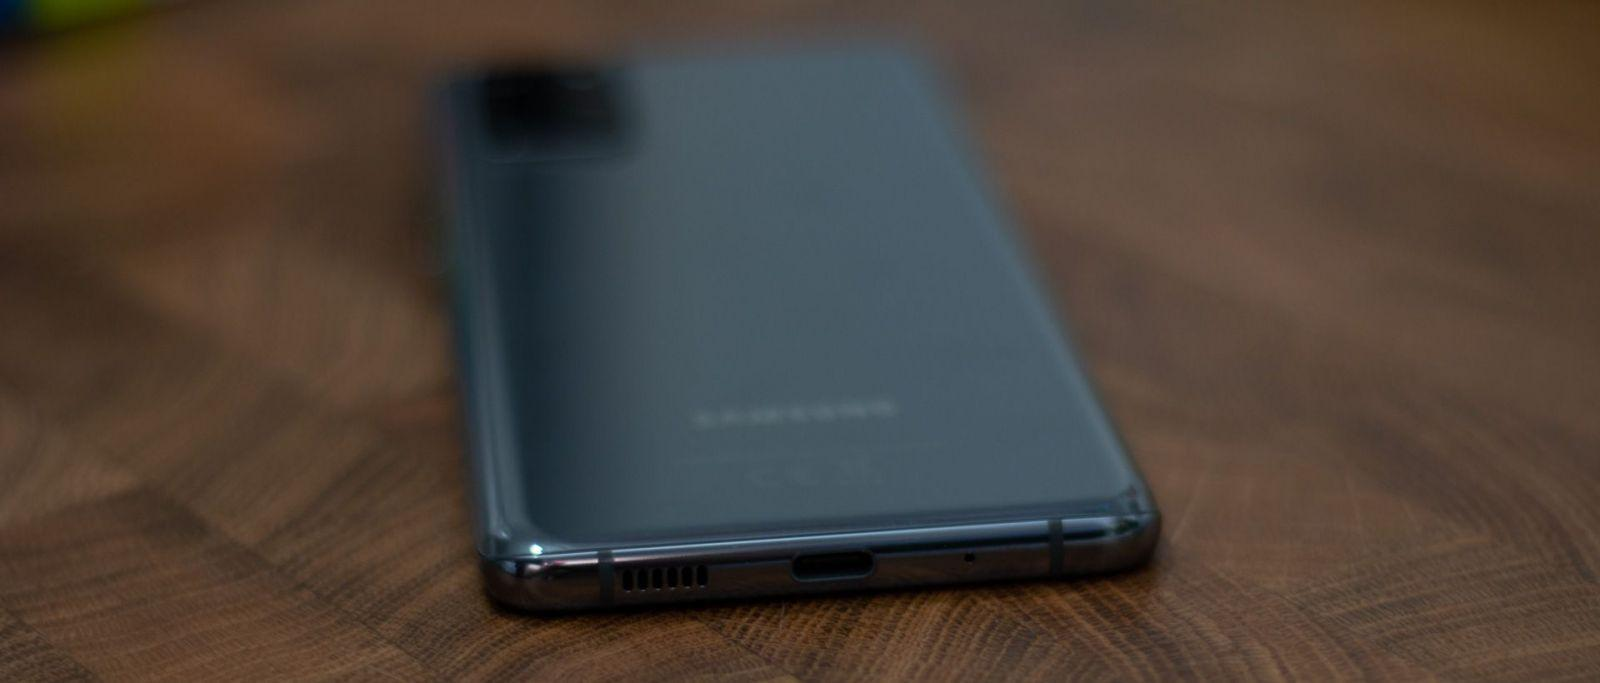 Premium without flaws. Review of the Samsung Galaxy S20 + Premium smartphone without flaws. Samsung Galaxy S20 + smartphone review